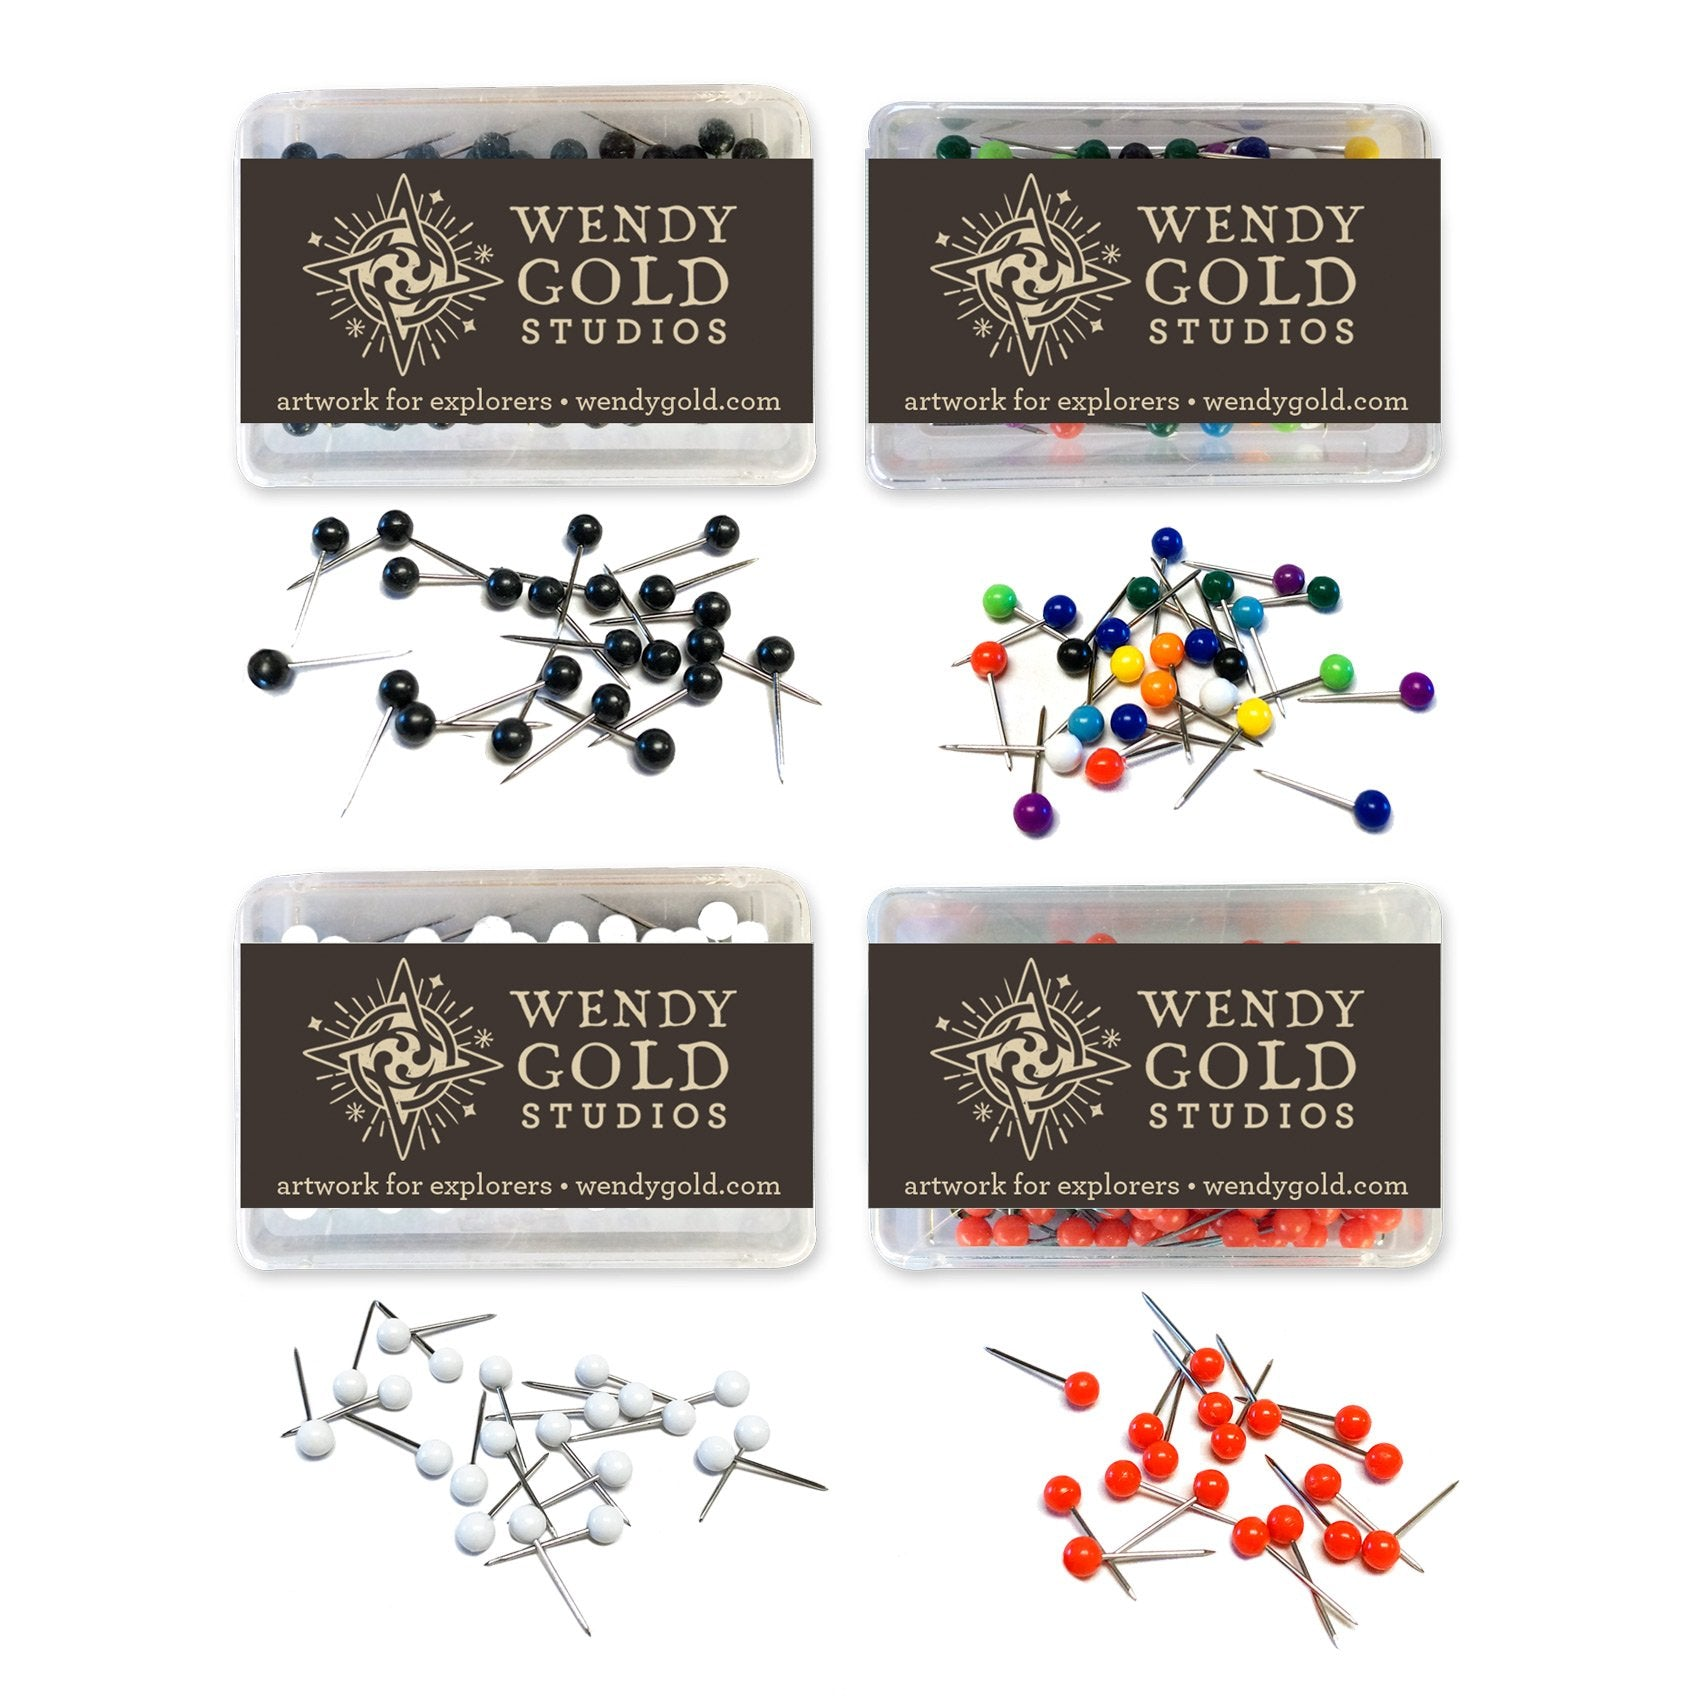 wendy gold studios pin colors